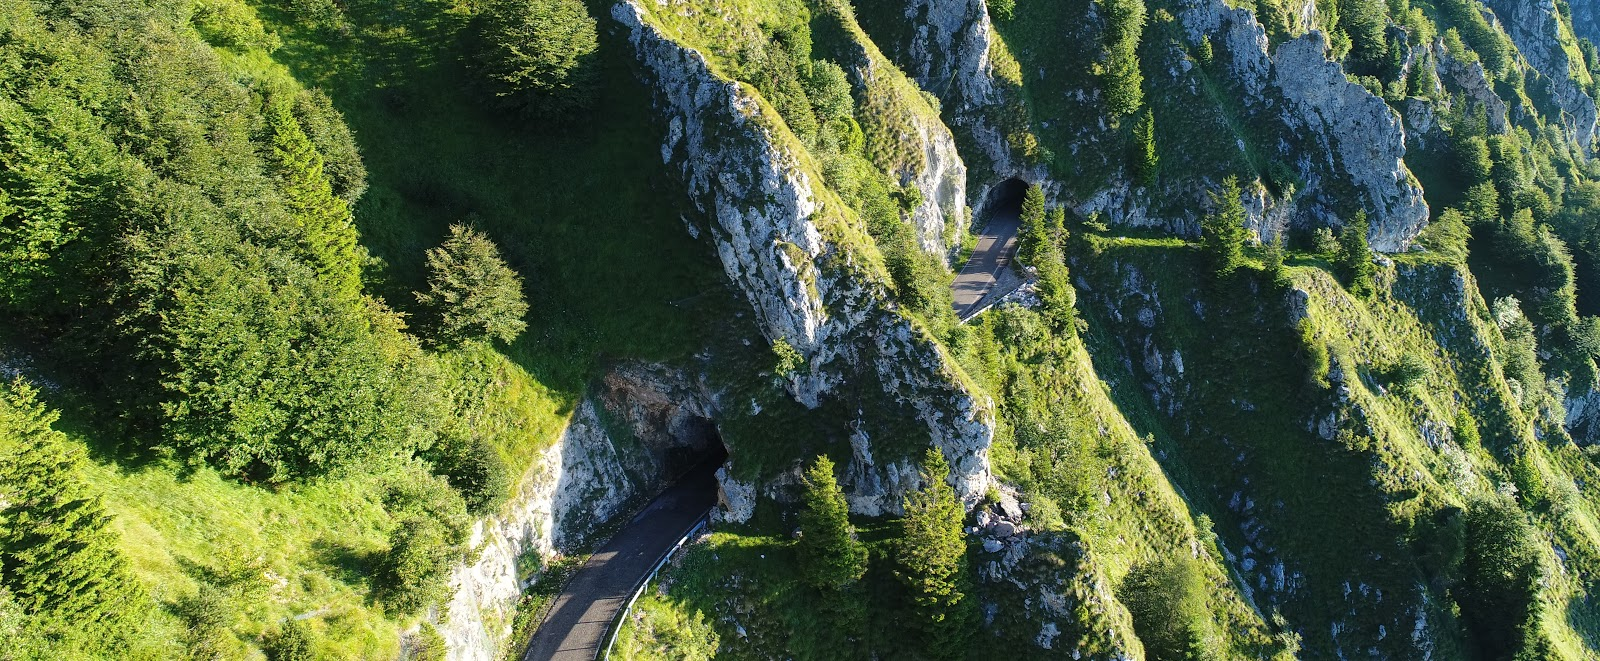 Bicycle ride of Monte Grappa from Fietta  - aerial drone photo of tunnels